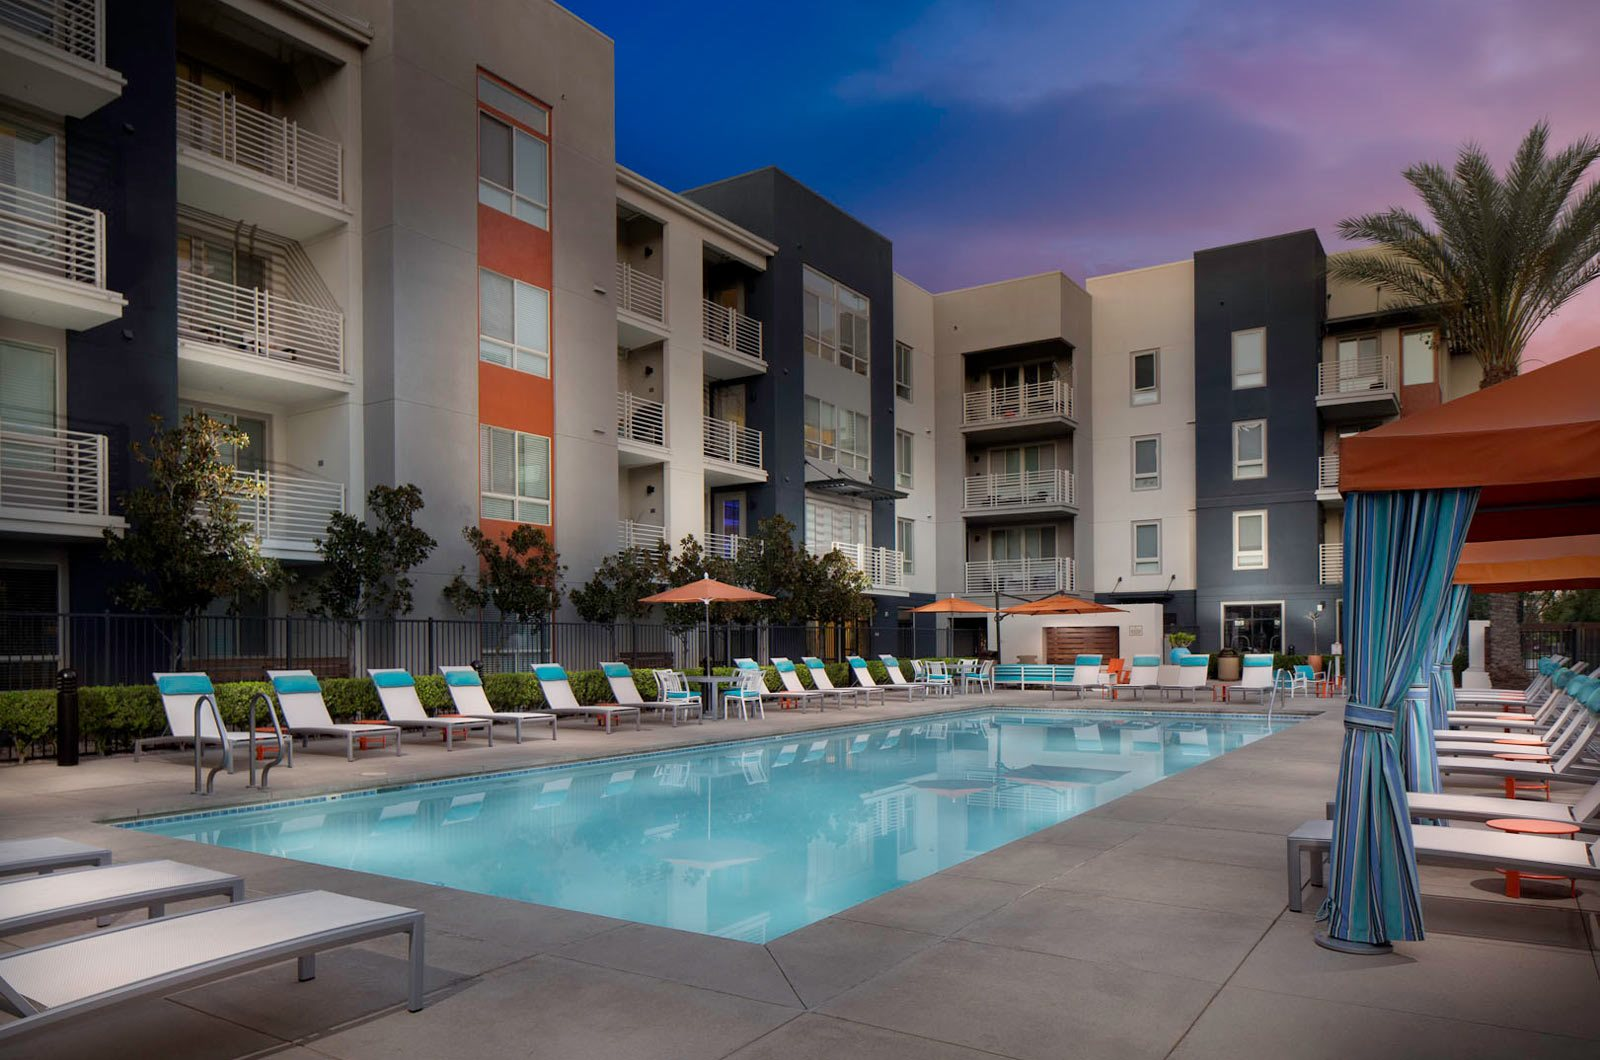 Pool at twilight at Carabella at Warner Center Apartments in Woodland Hills CA